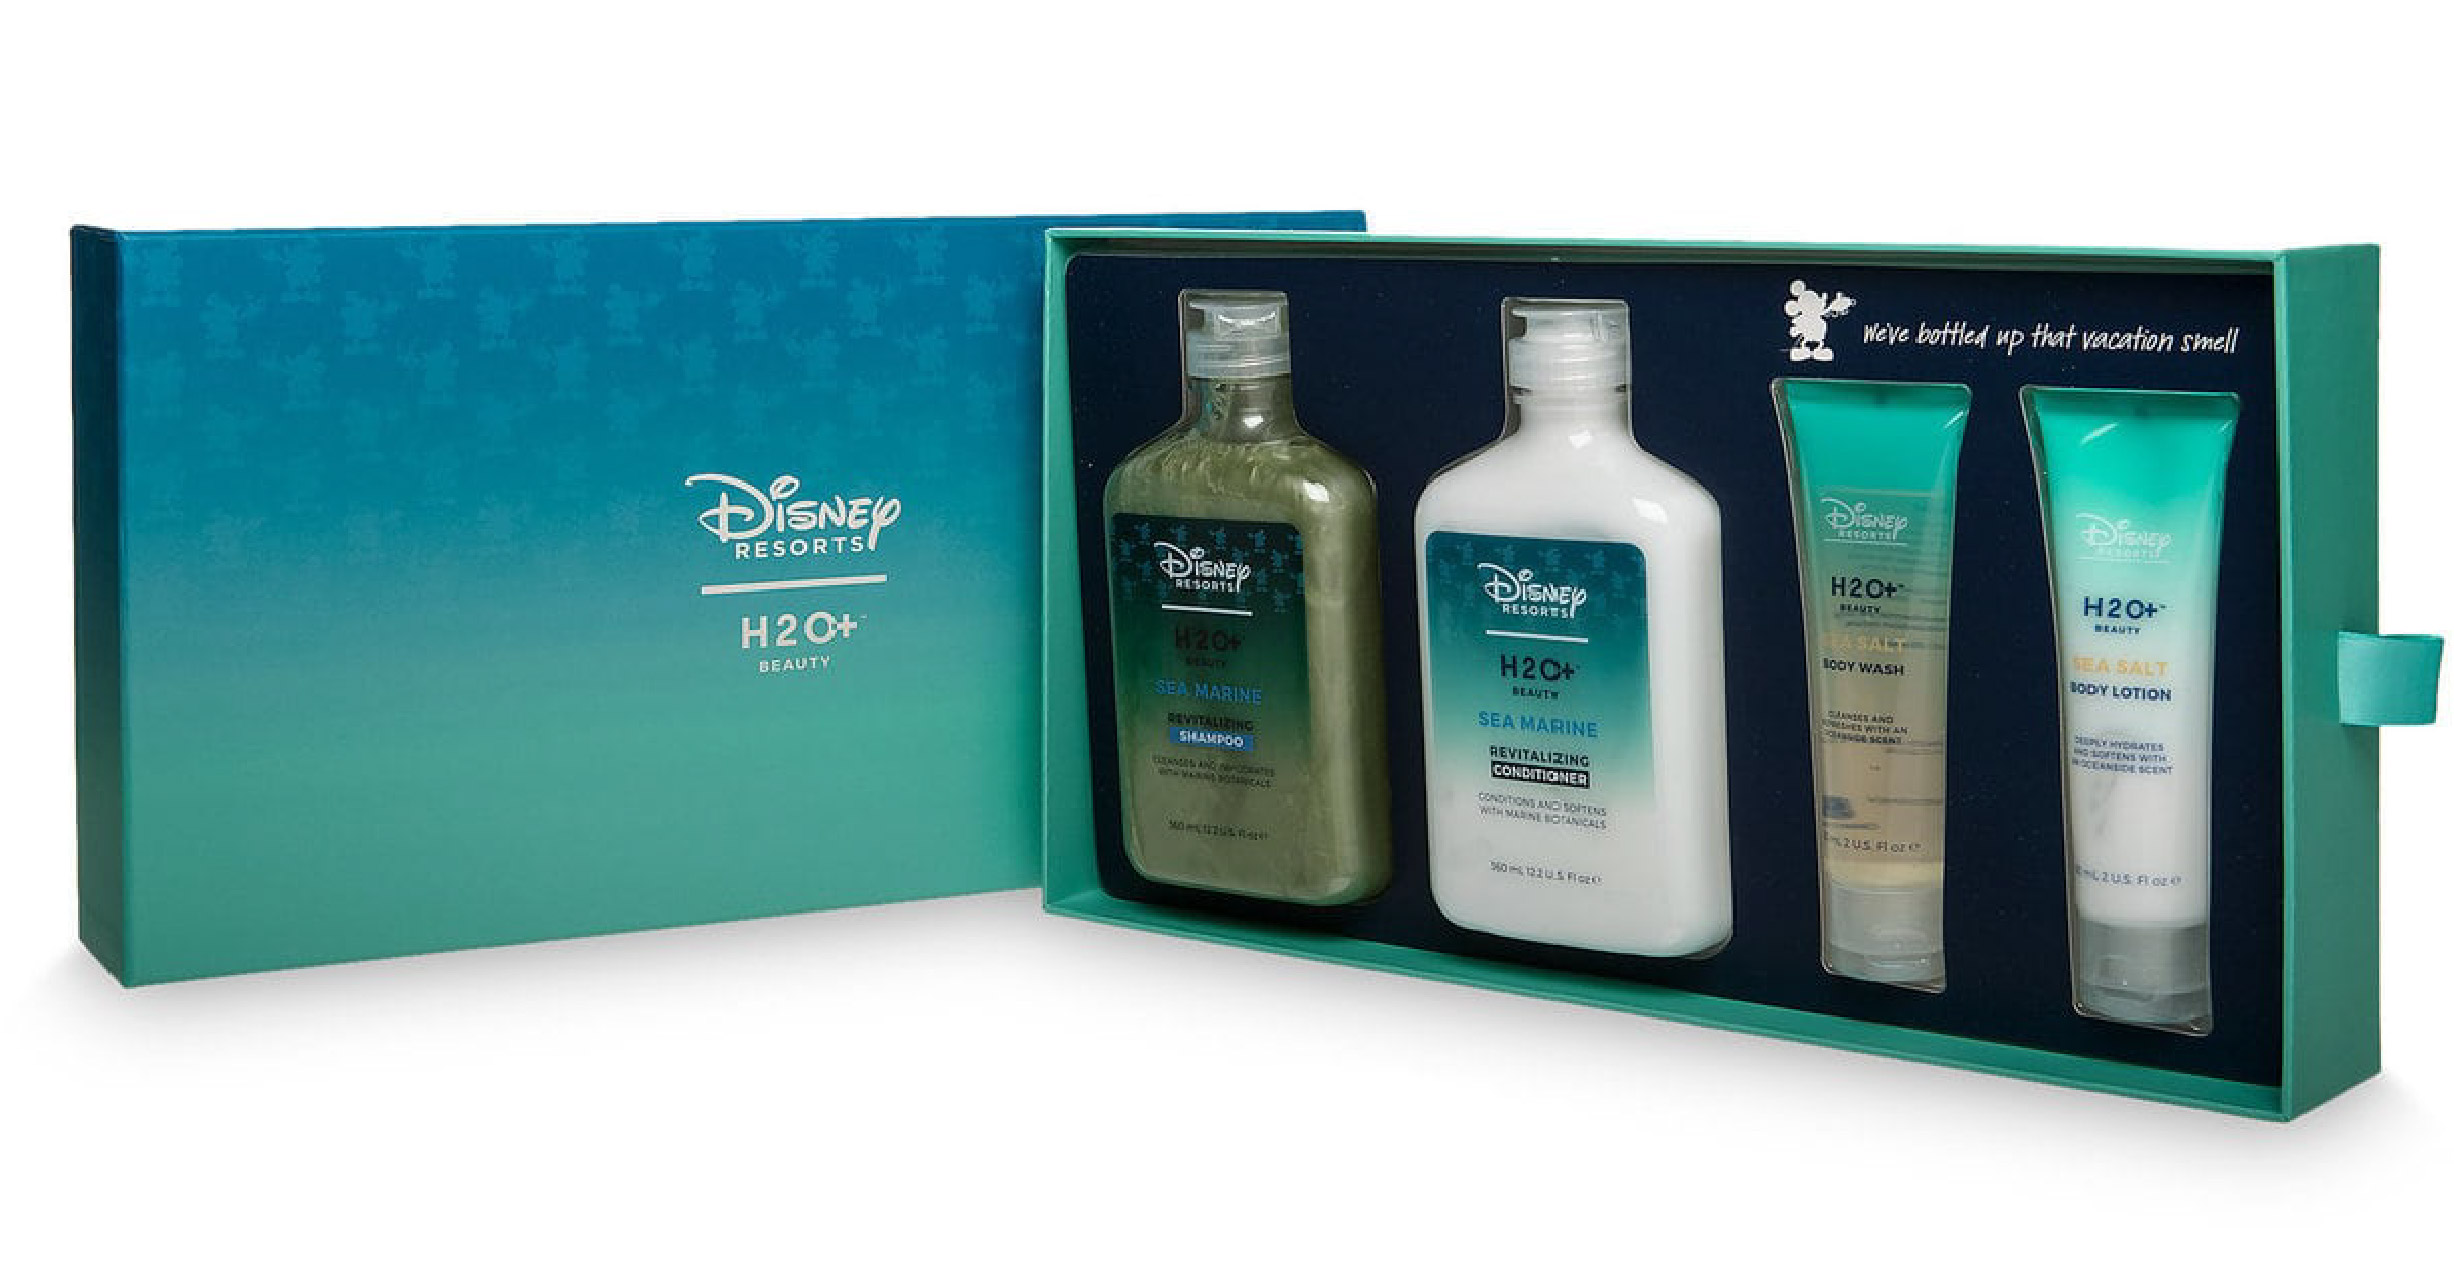 big sky packaging teams up with Disney resorts and h20 for the creation of set boxes